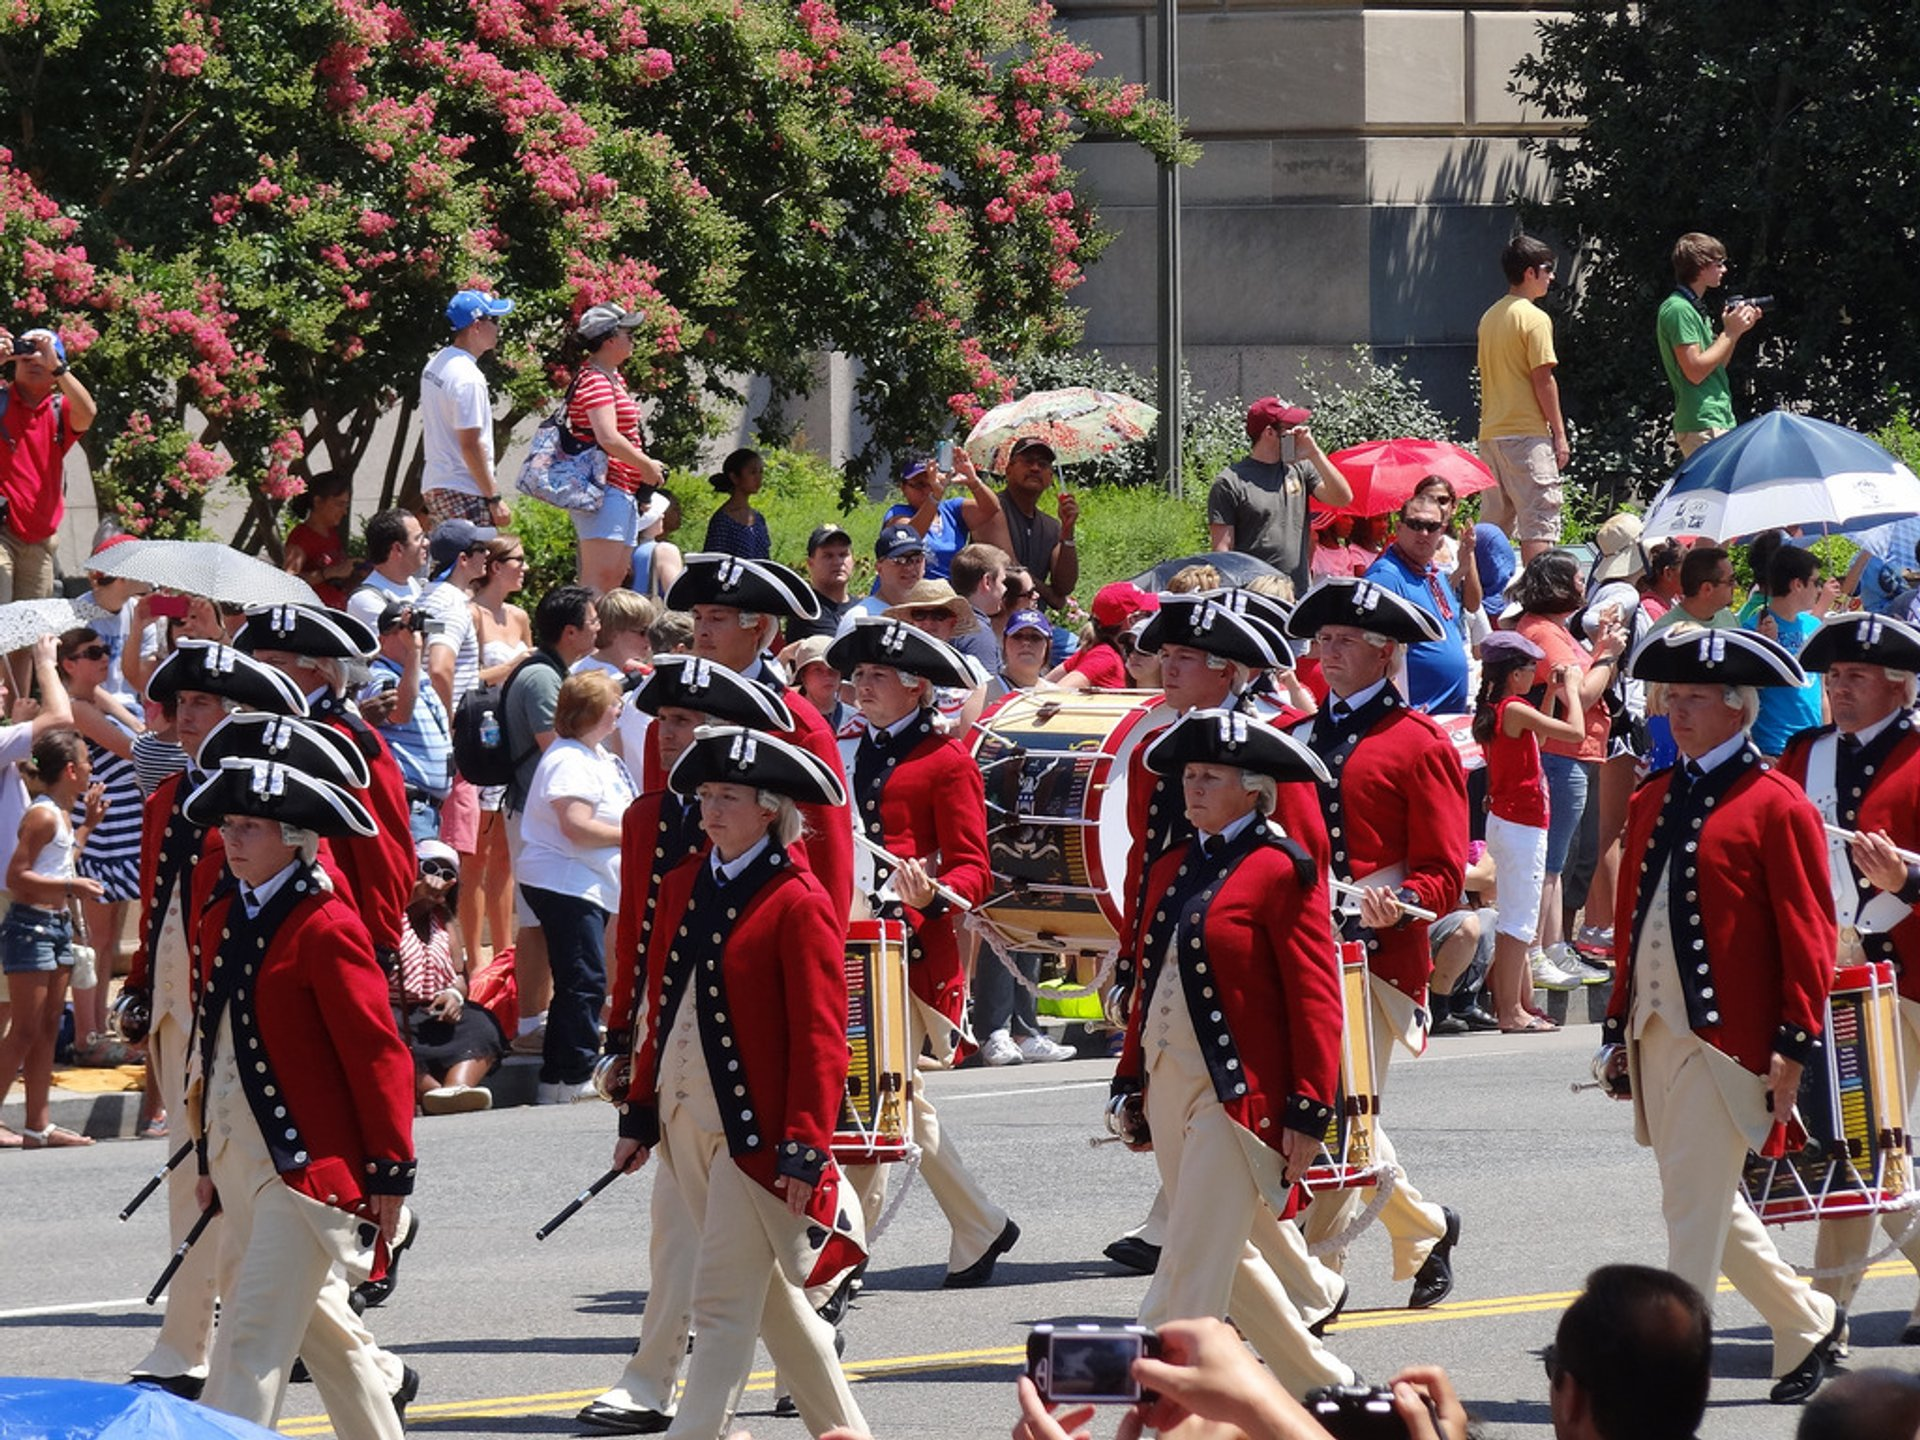 4th of July Concert, Parade & Fireworks in Washington, D.C. - Best Season 2019